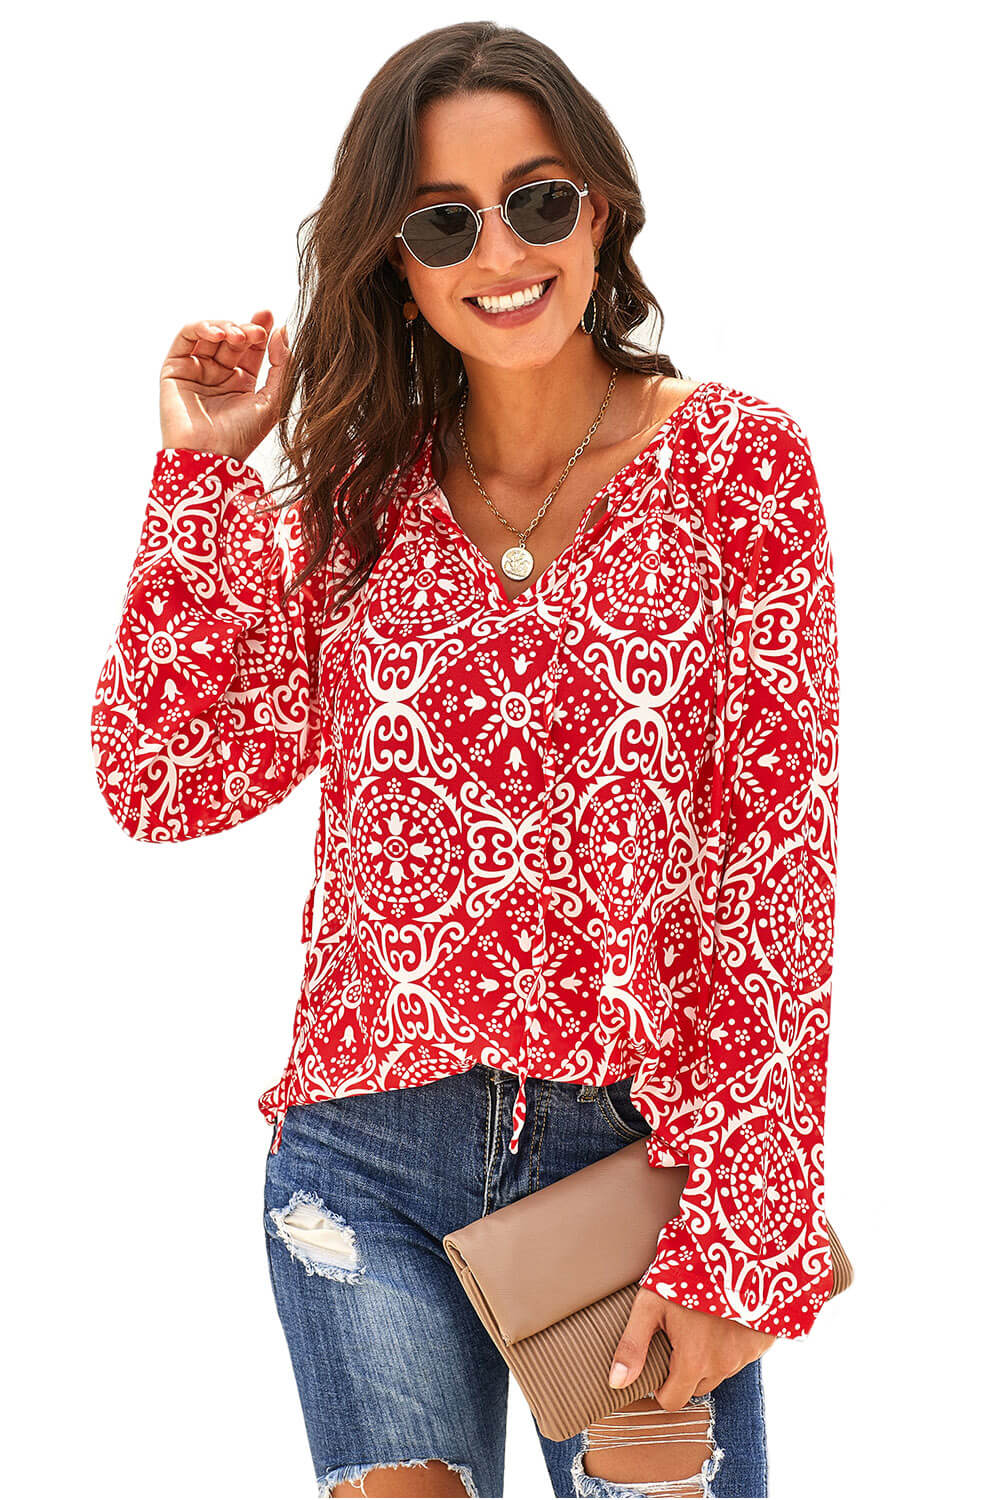 Red Long Sleeve V Neck Printed Chiffon Blouse Long Sleeve Tops Discount Designer Fashion Clothes Shoes Bags Women Men Kids Children Black Owned Business